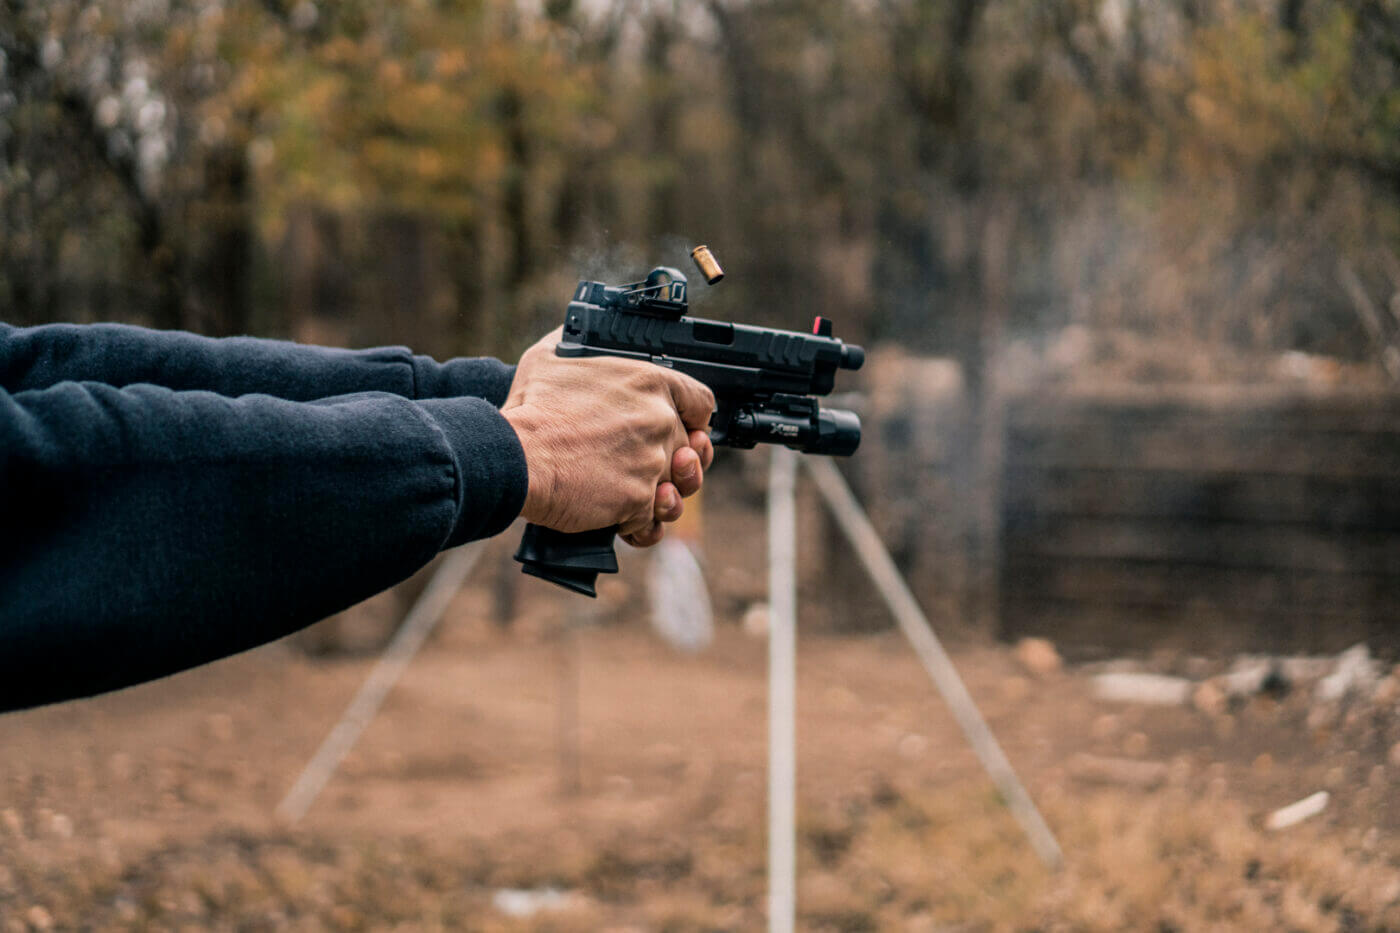 Shooting the XD-M Elite Tactical OSP